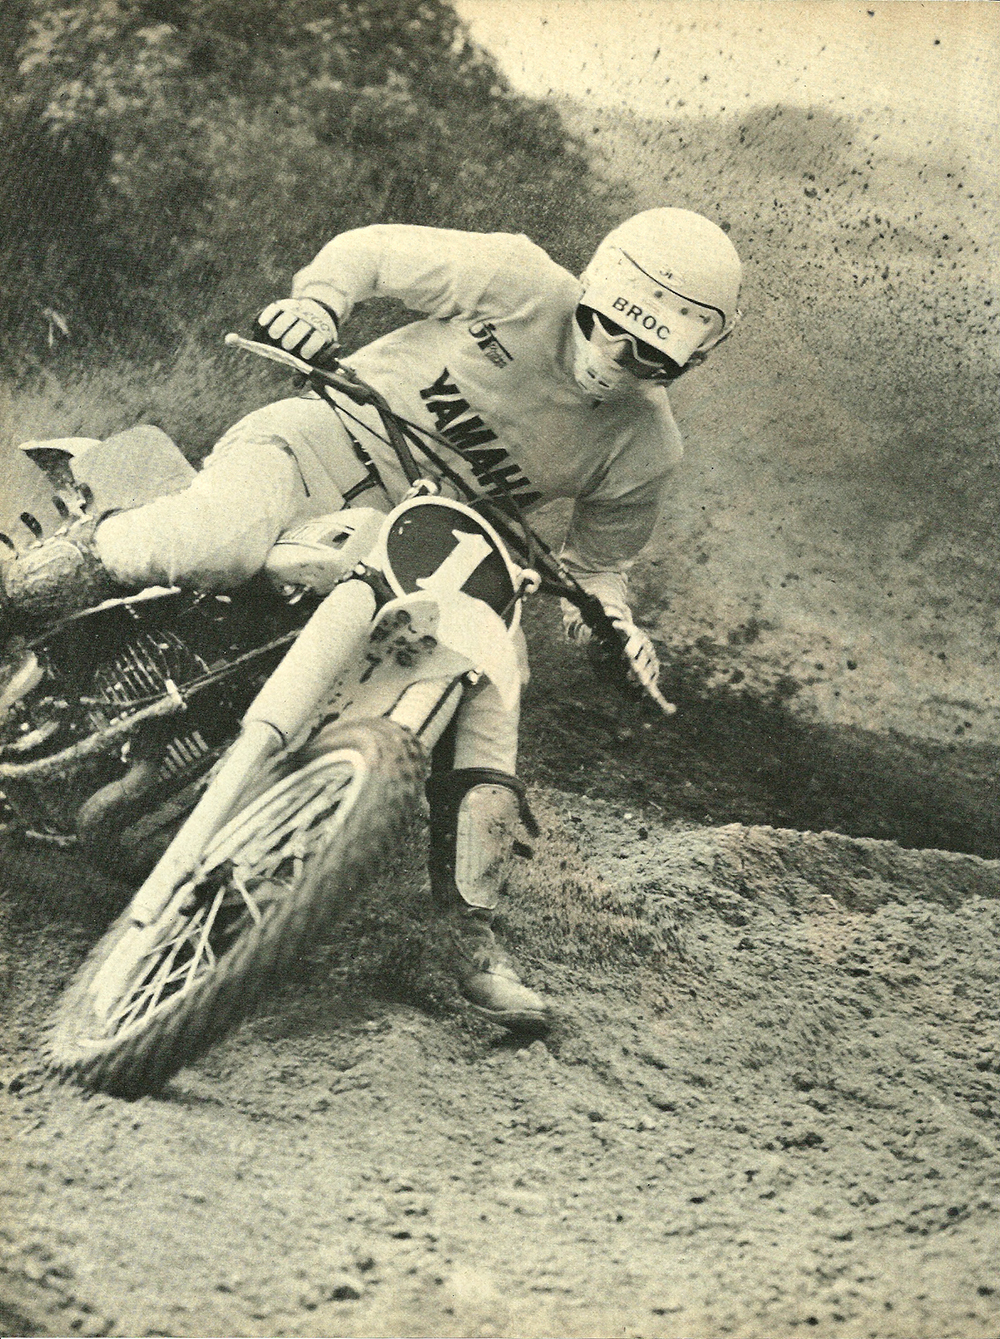 1978 Yamaha YZ250E road test 3.jpg